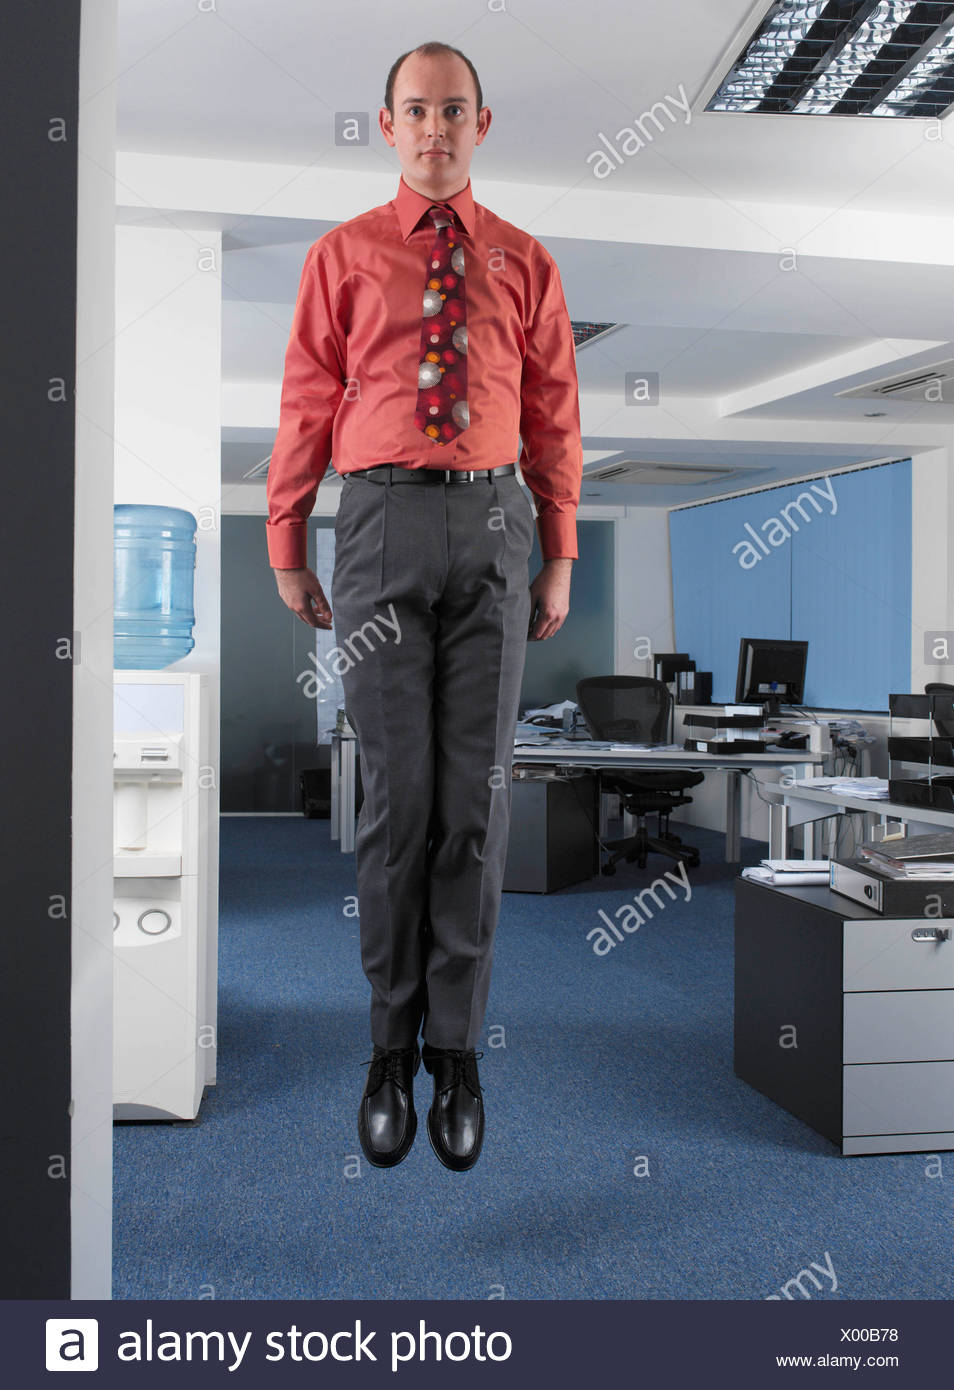 Office worker suspended in mid air - Stock Image